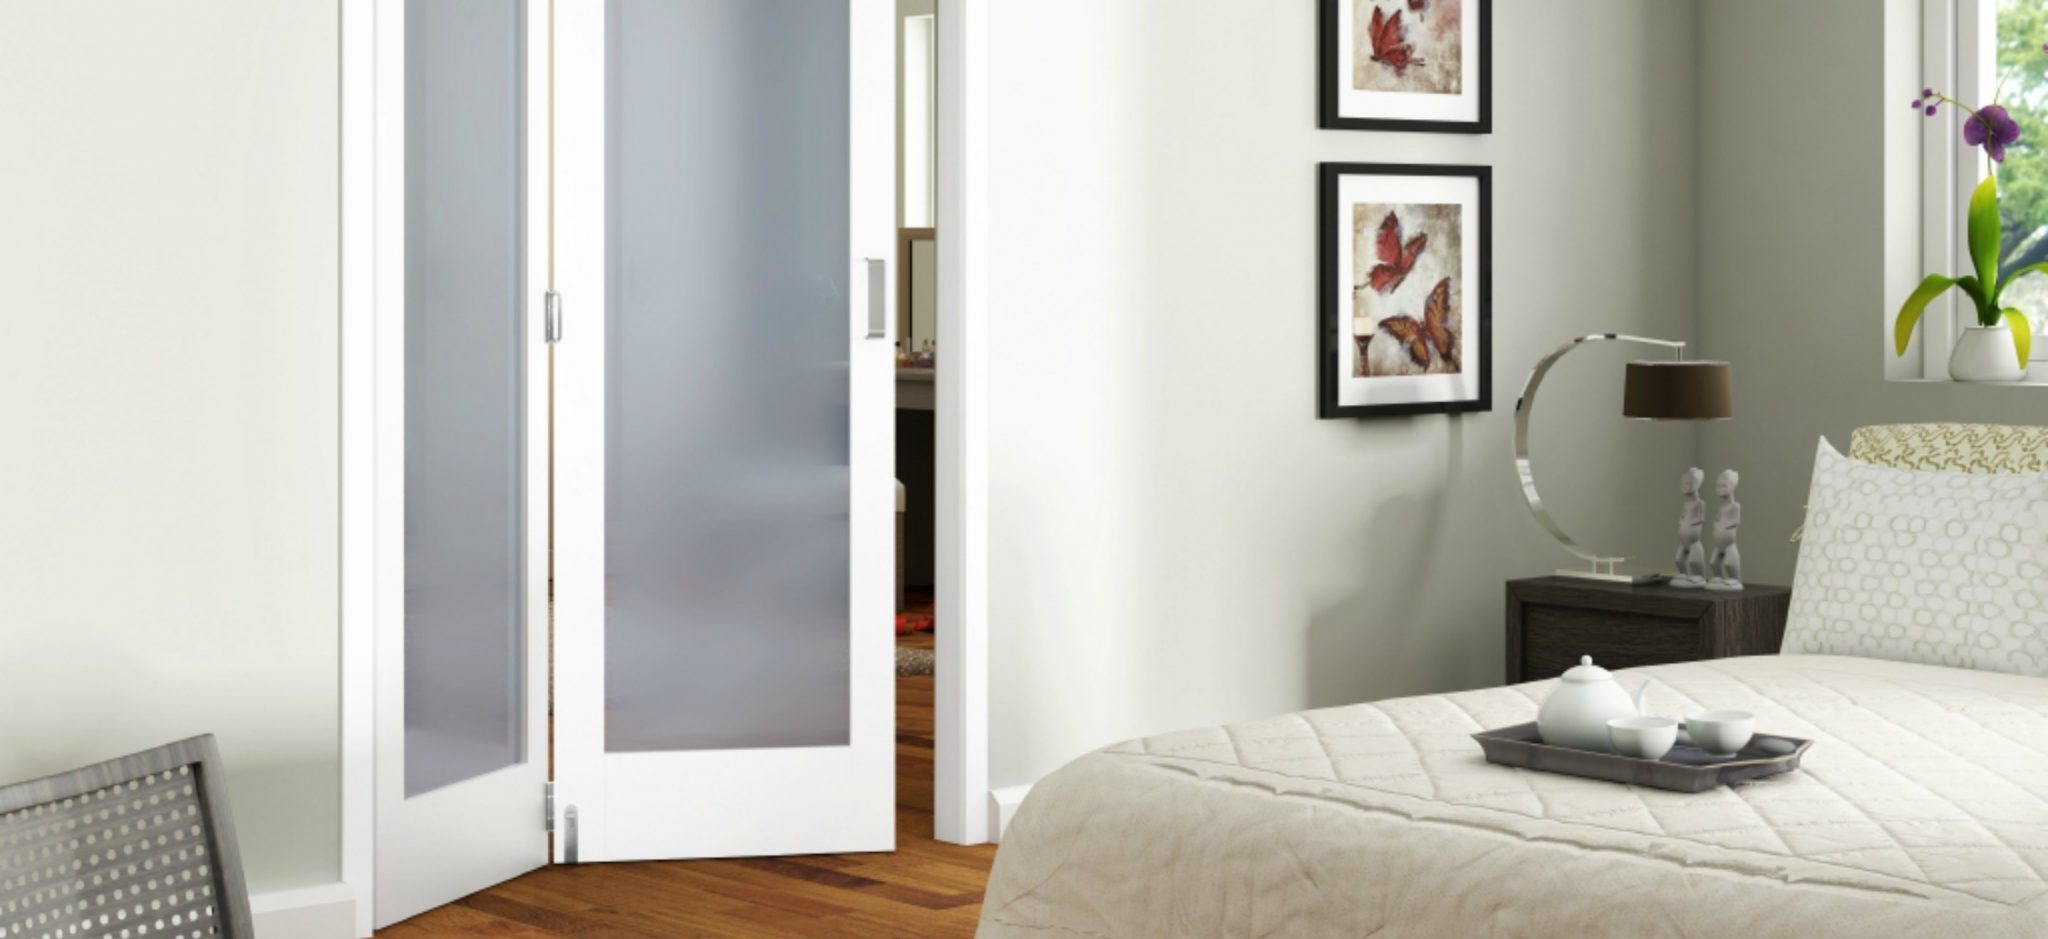 Astounding Internal Bifold Doors Faqs Doors More Home Interior And Landscaping Eliaenasavecom